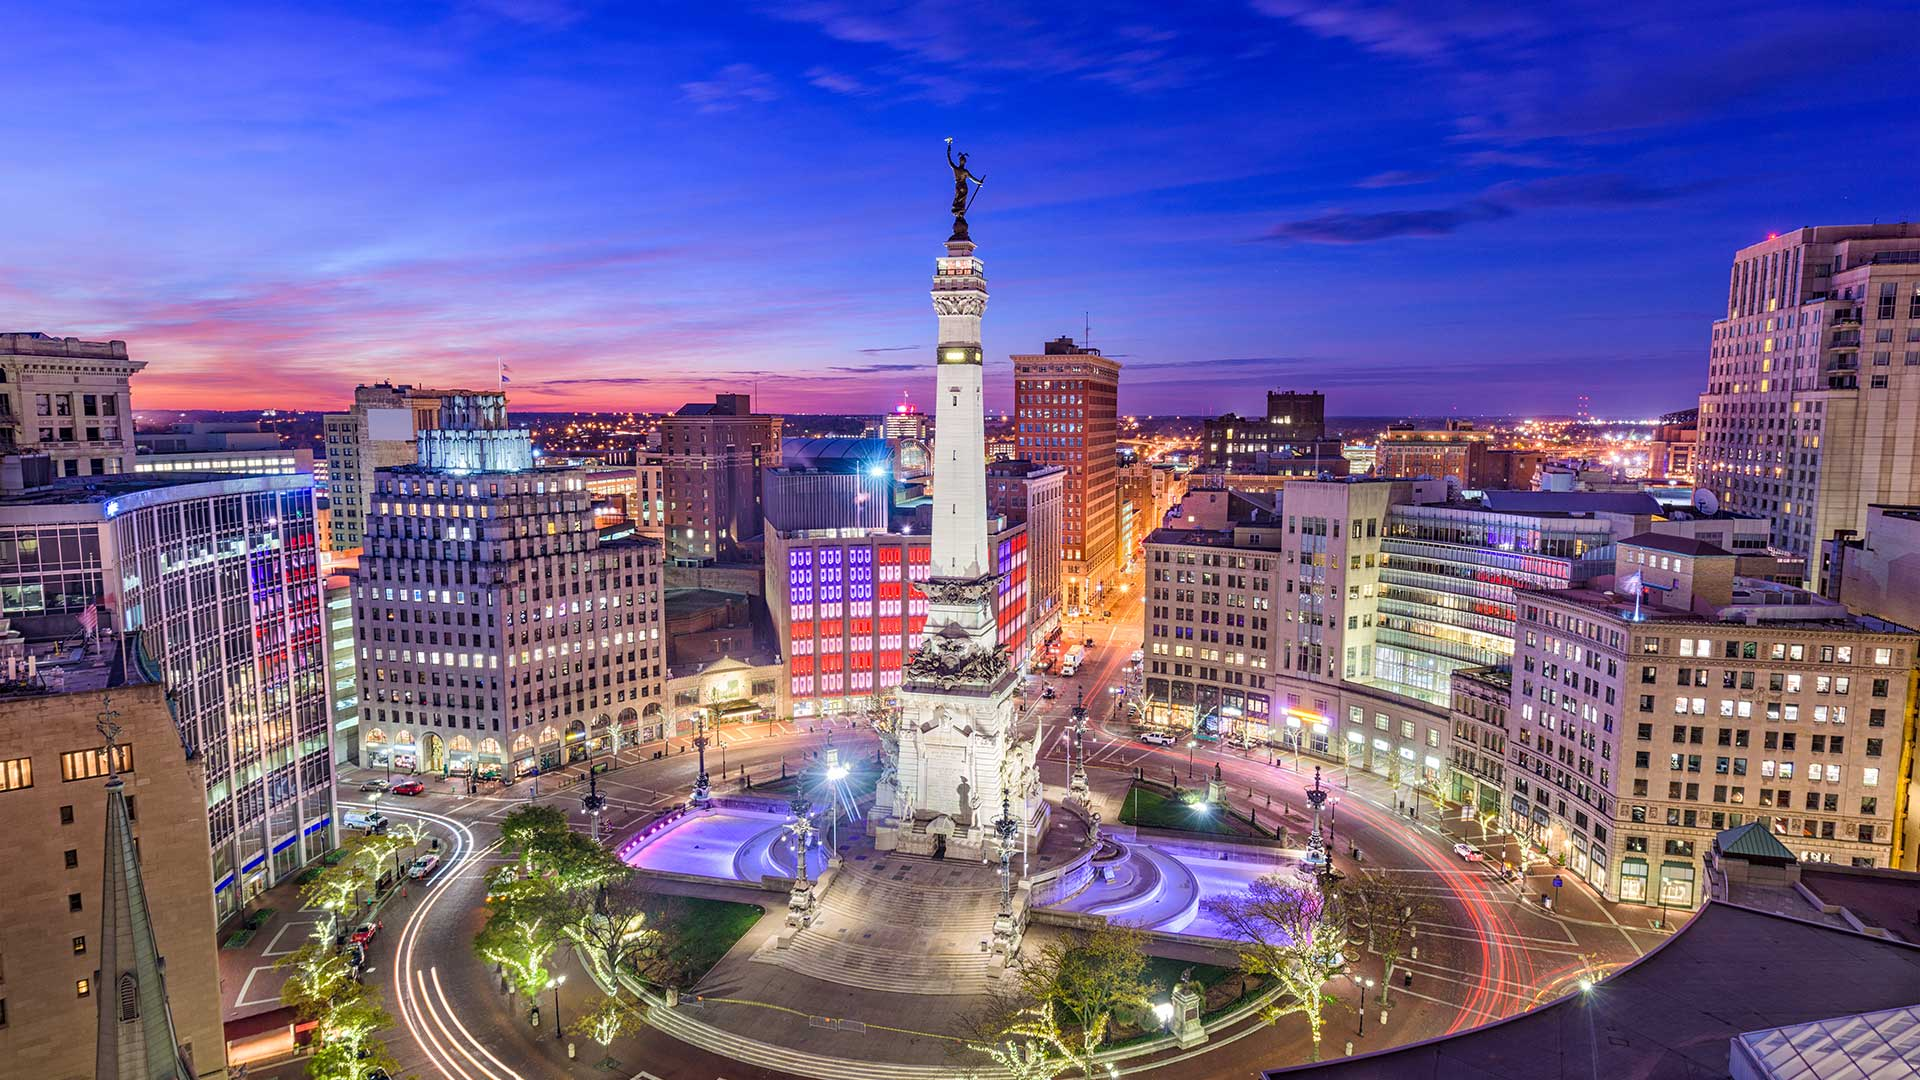 Panorama to illustrate dating in indianapolis